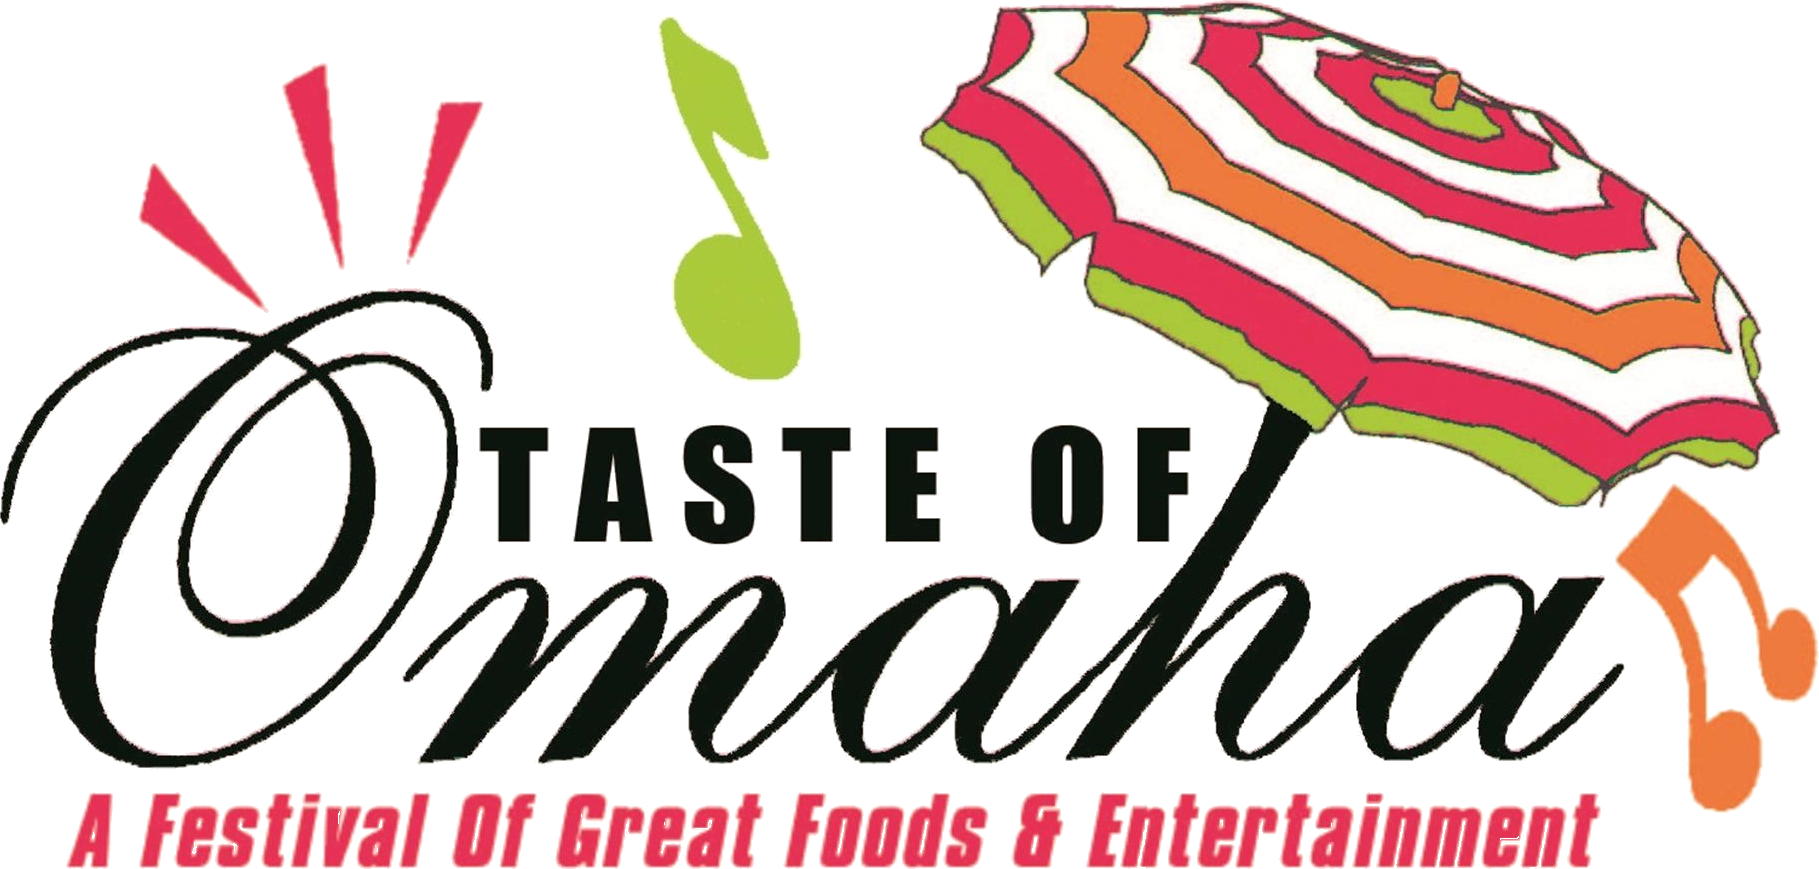 TASTE OF OMAHA | 23rd Annual